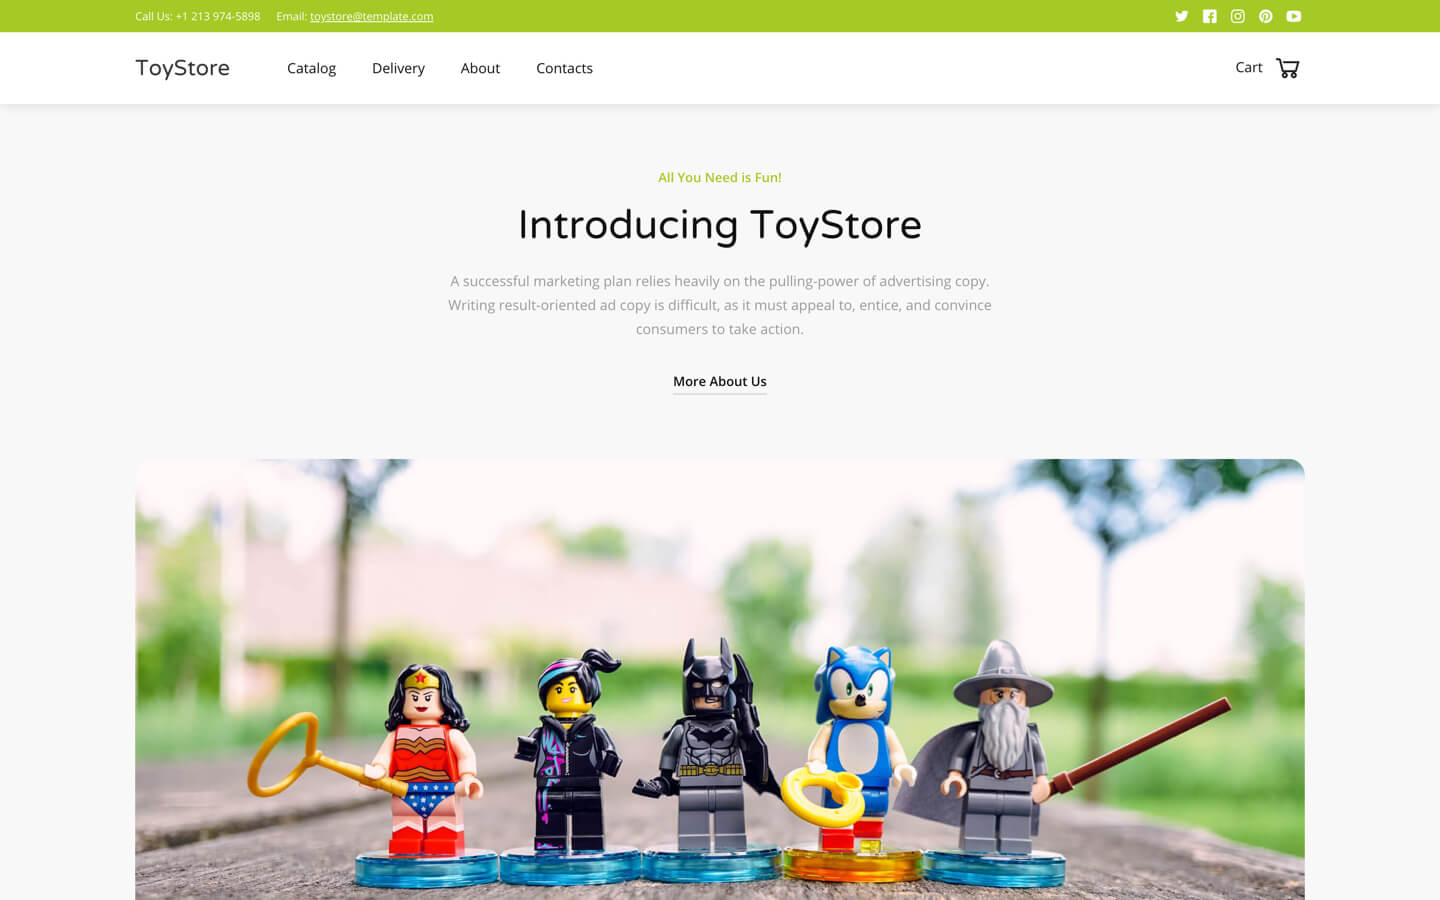 toystore-6